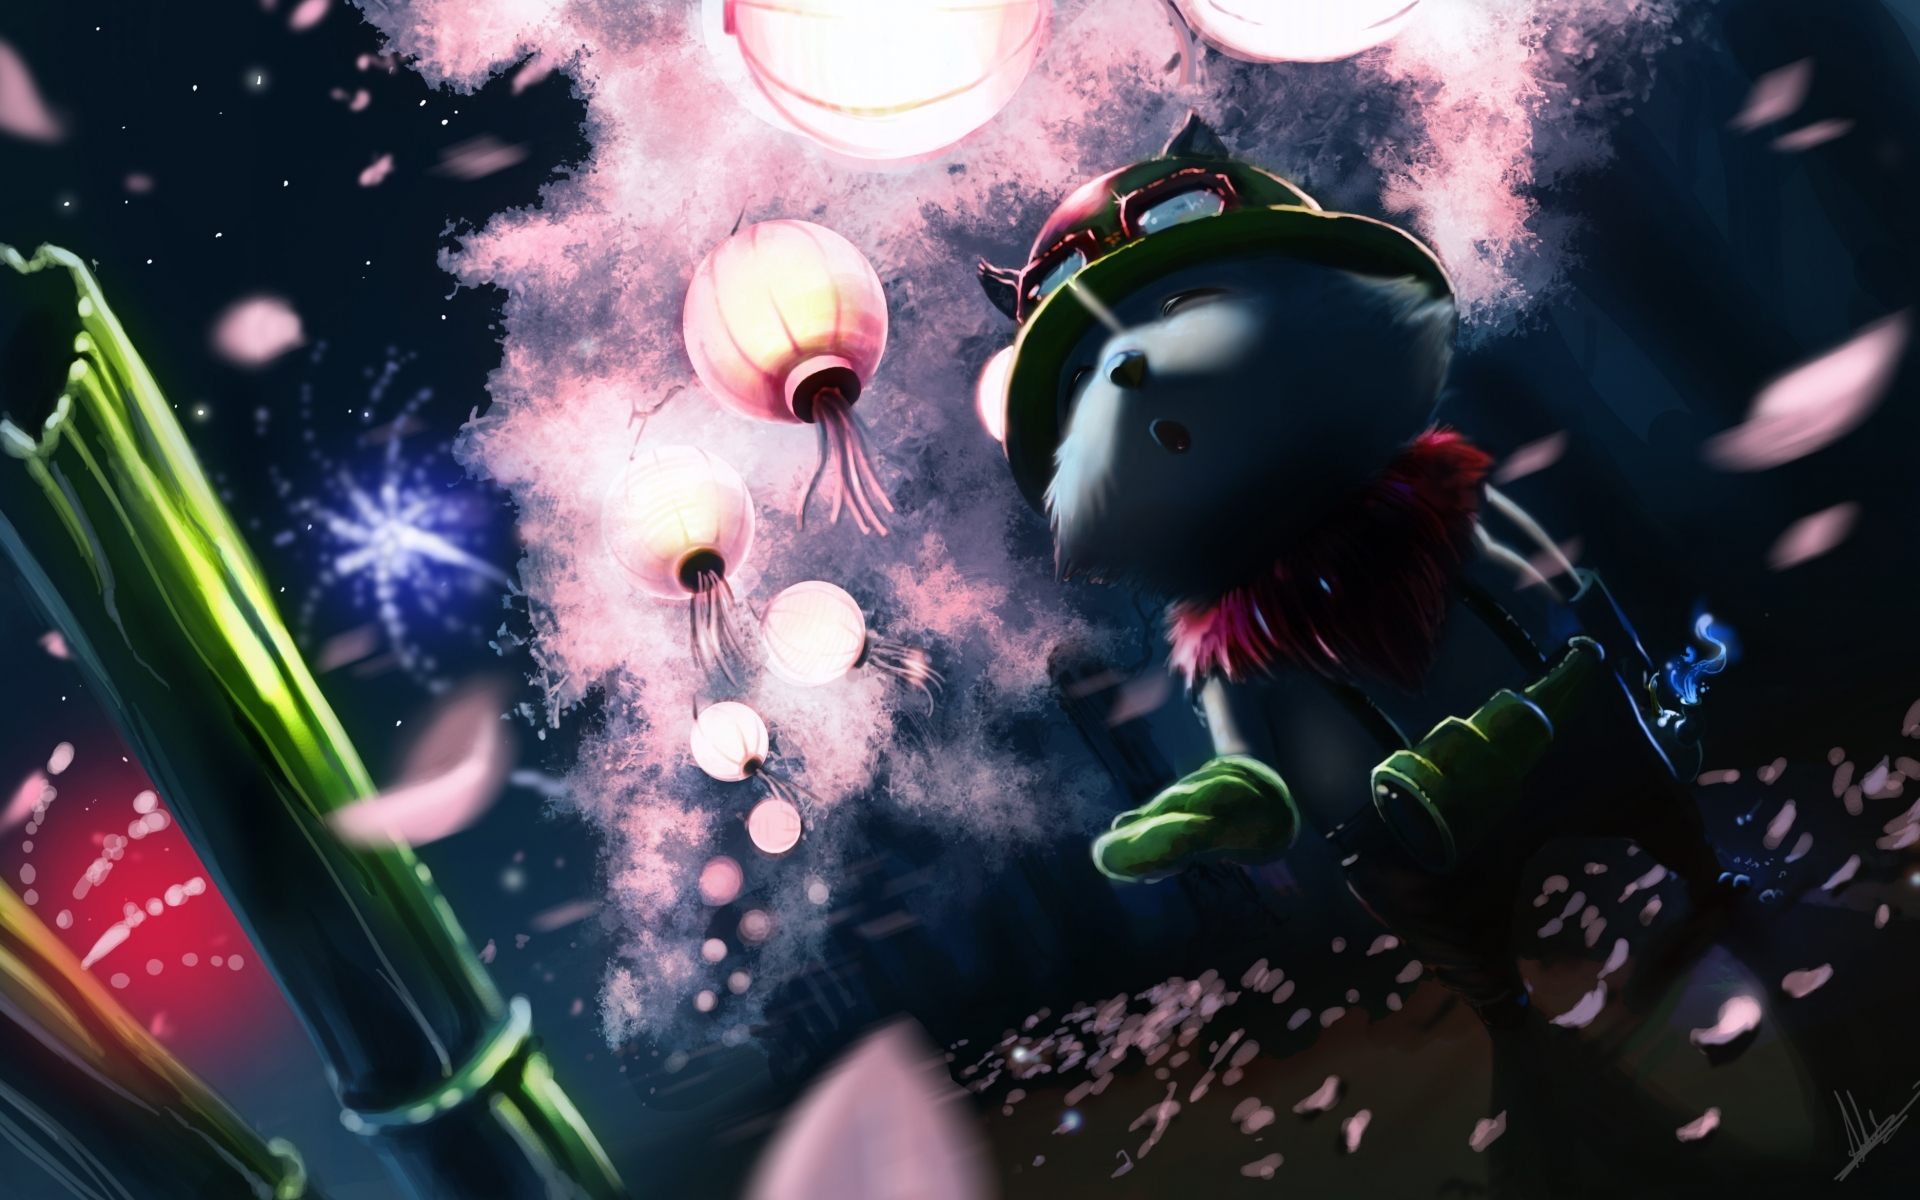 Teemo Fan Art - League of Legends Wallpapers